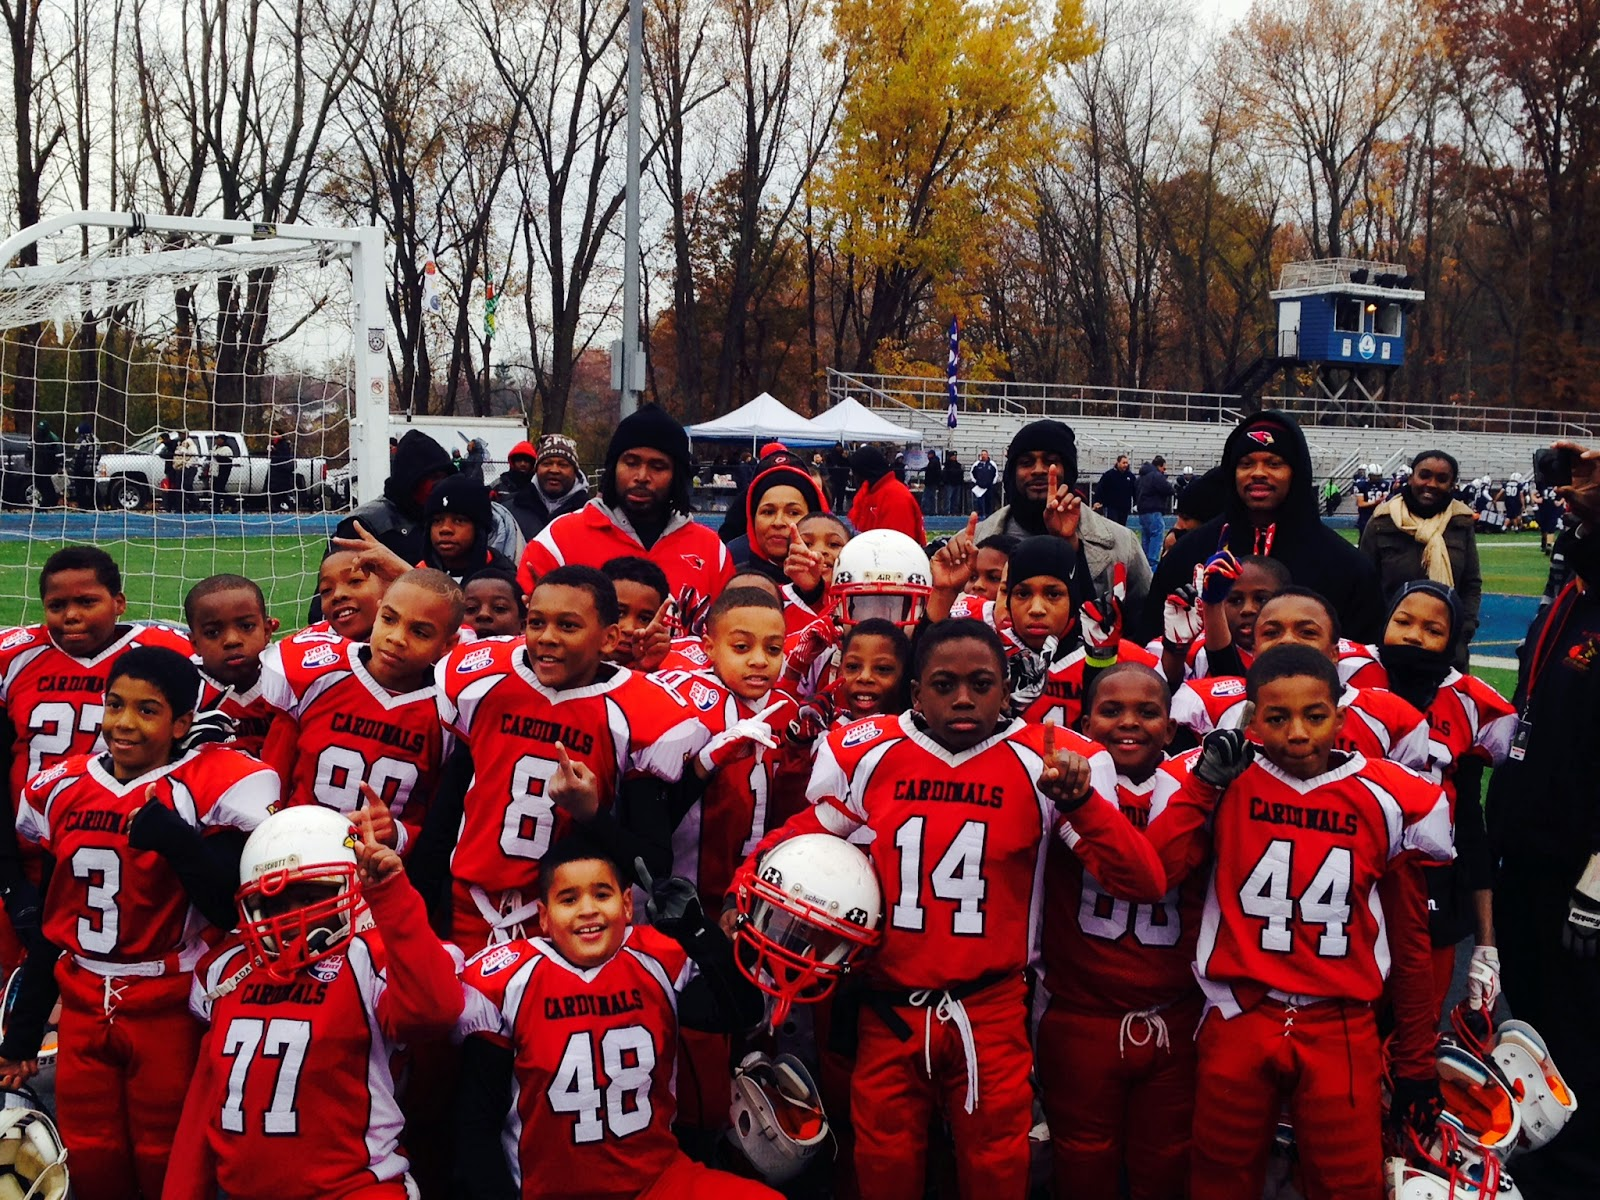 Plainfield Cardinals Junior Pee Wee Division Advances to Regional  Semi-Finals. POP WARNER ... 9792b8ace